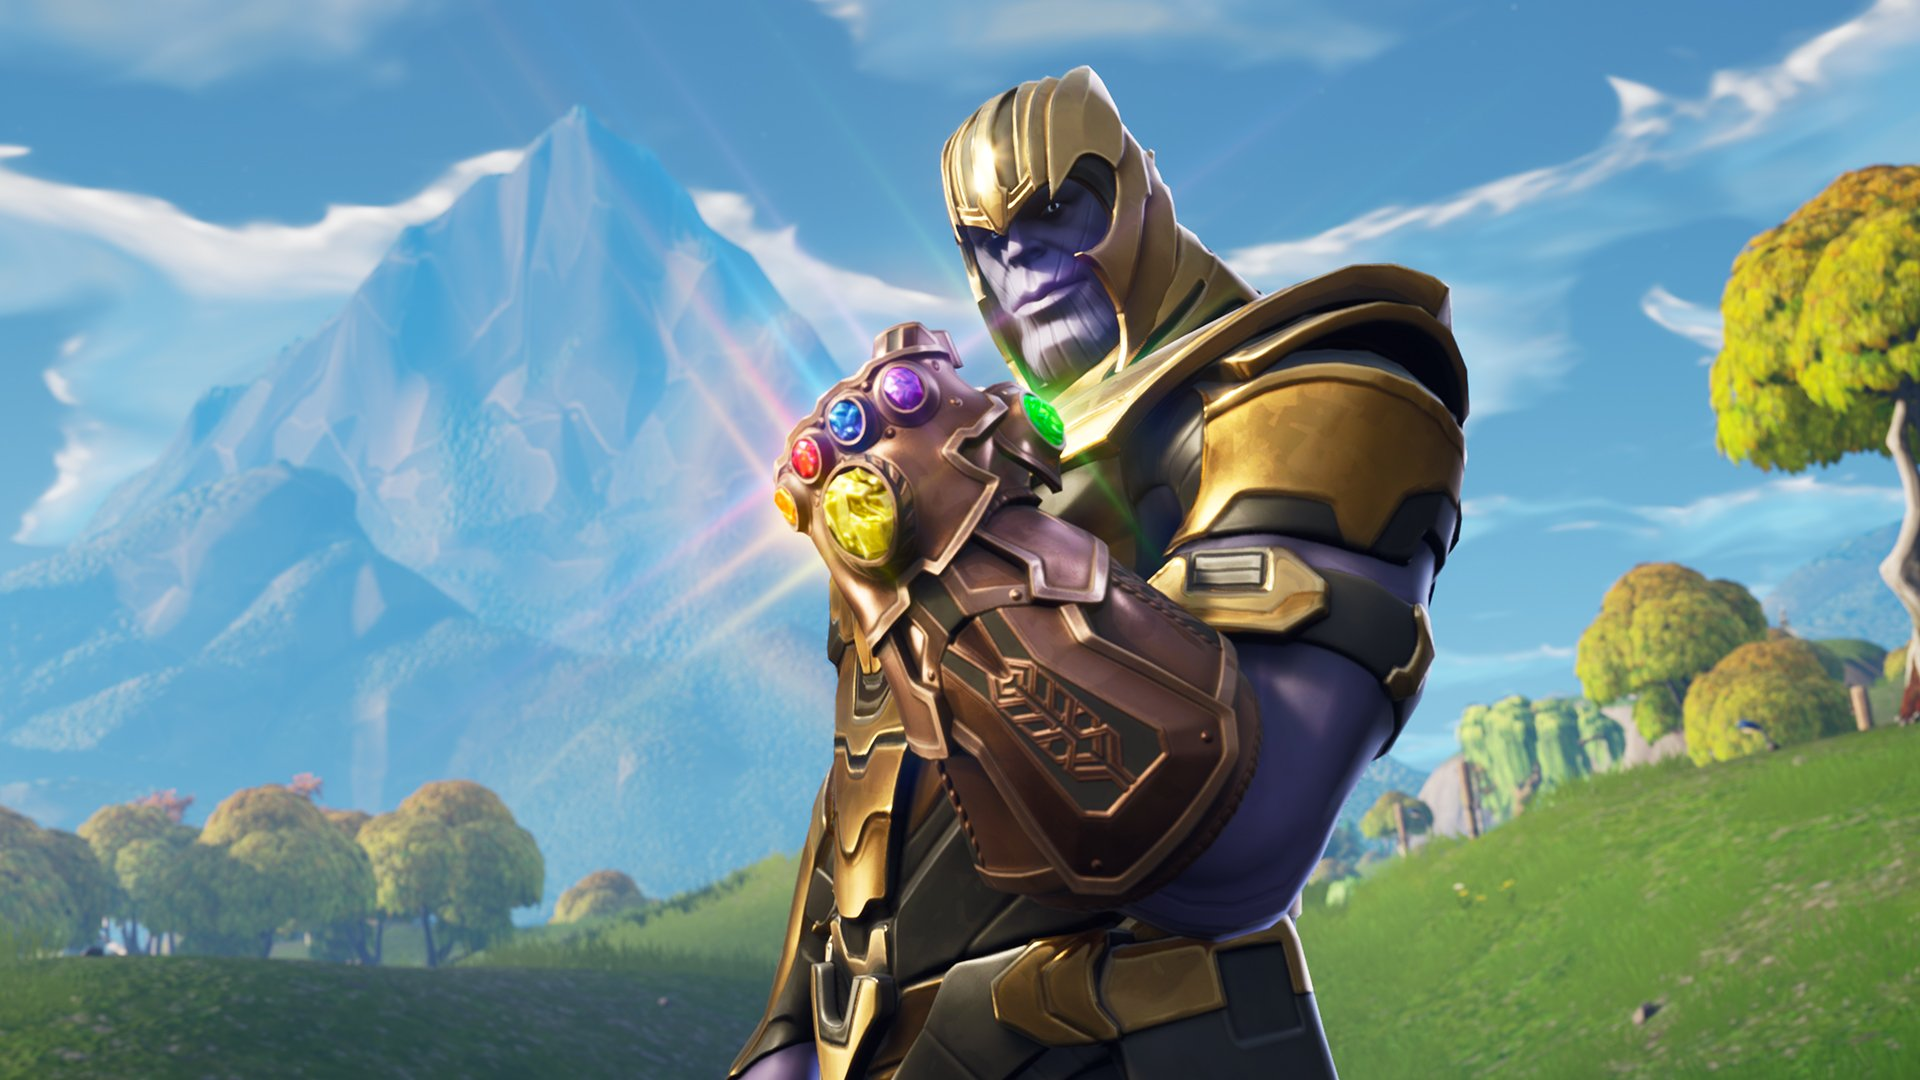 How to play as Thanos in Fortnite Endgame